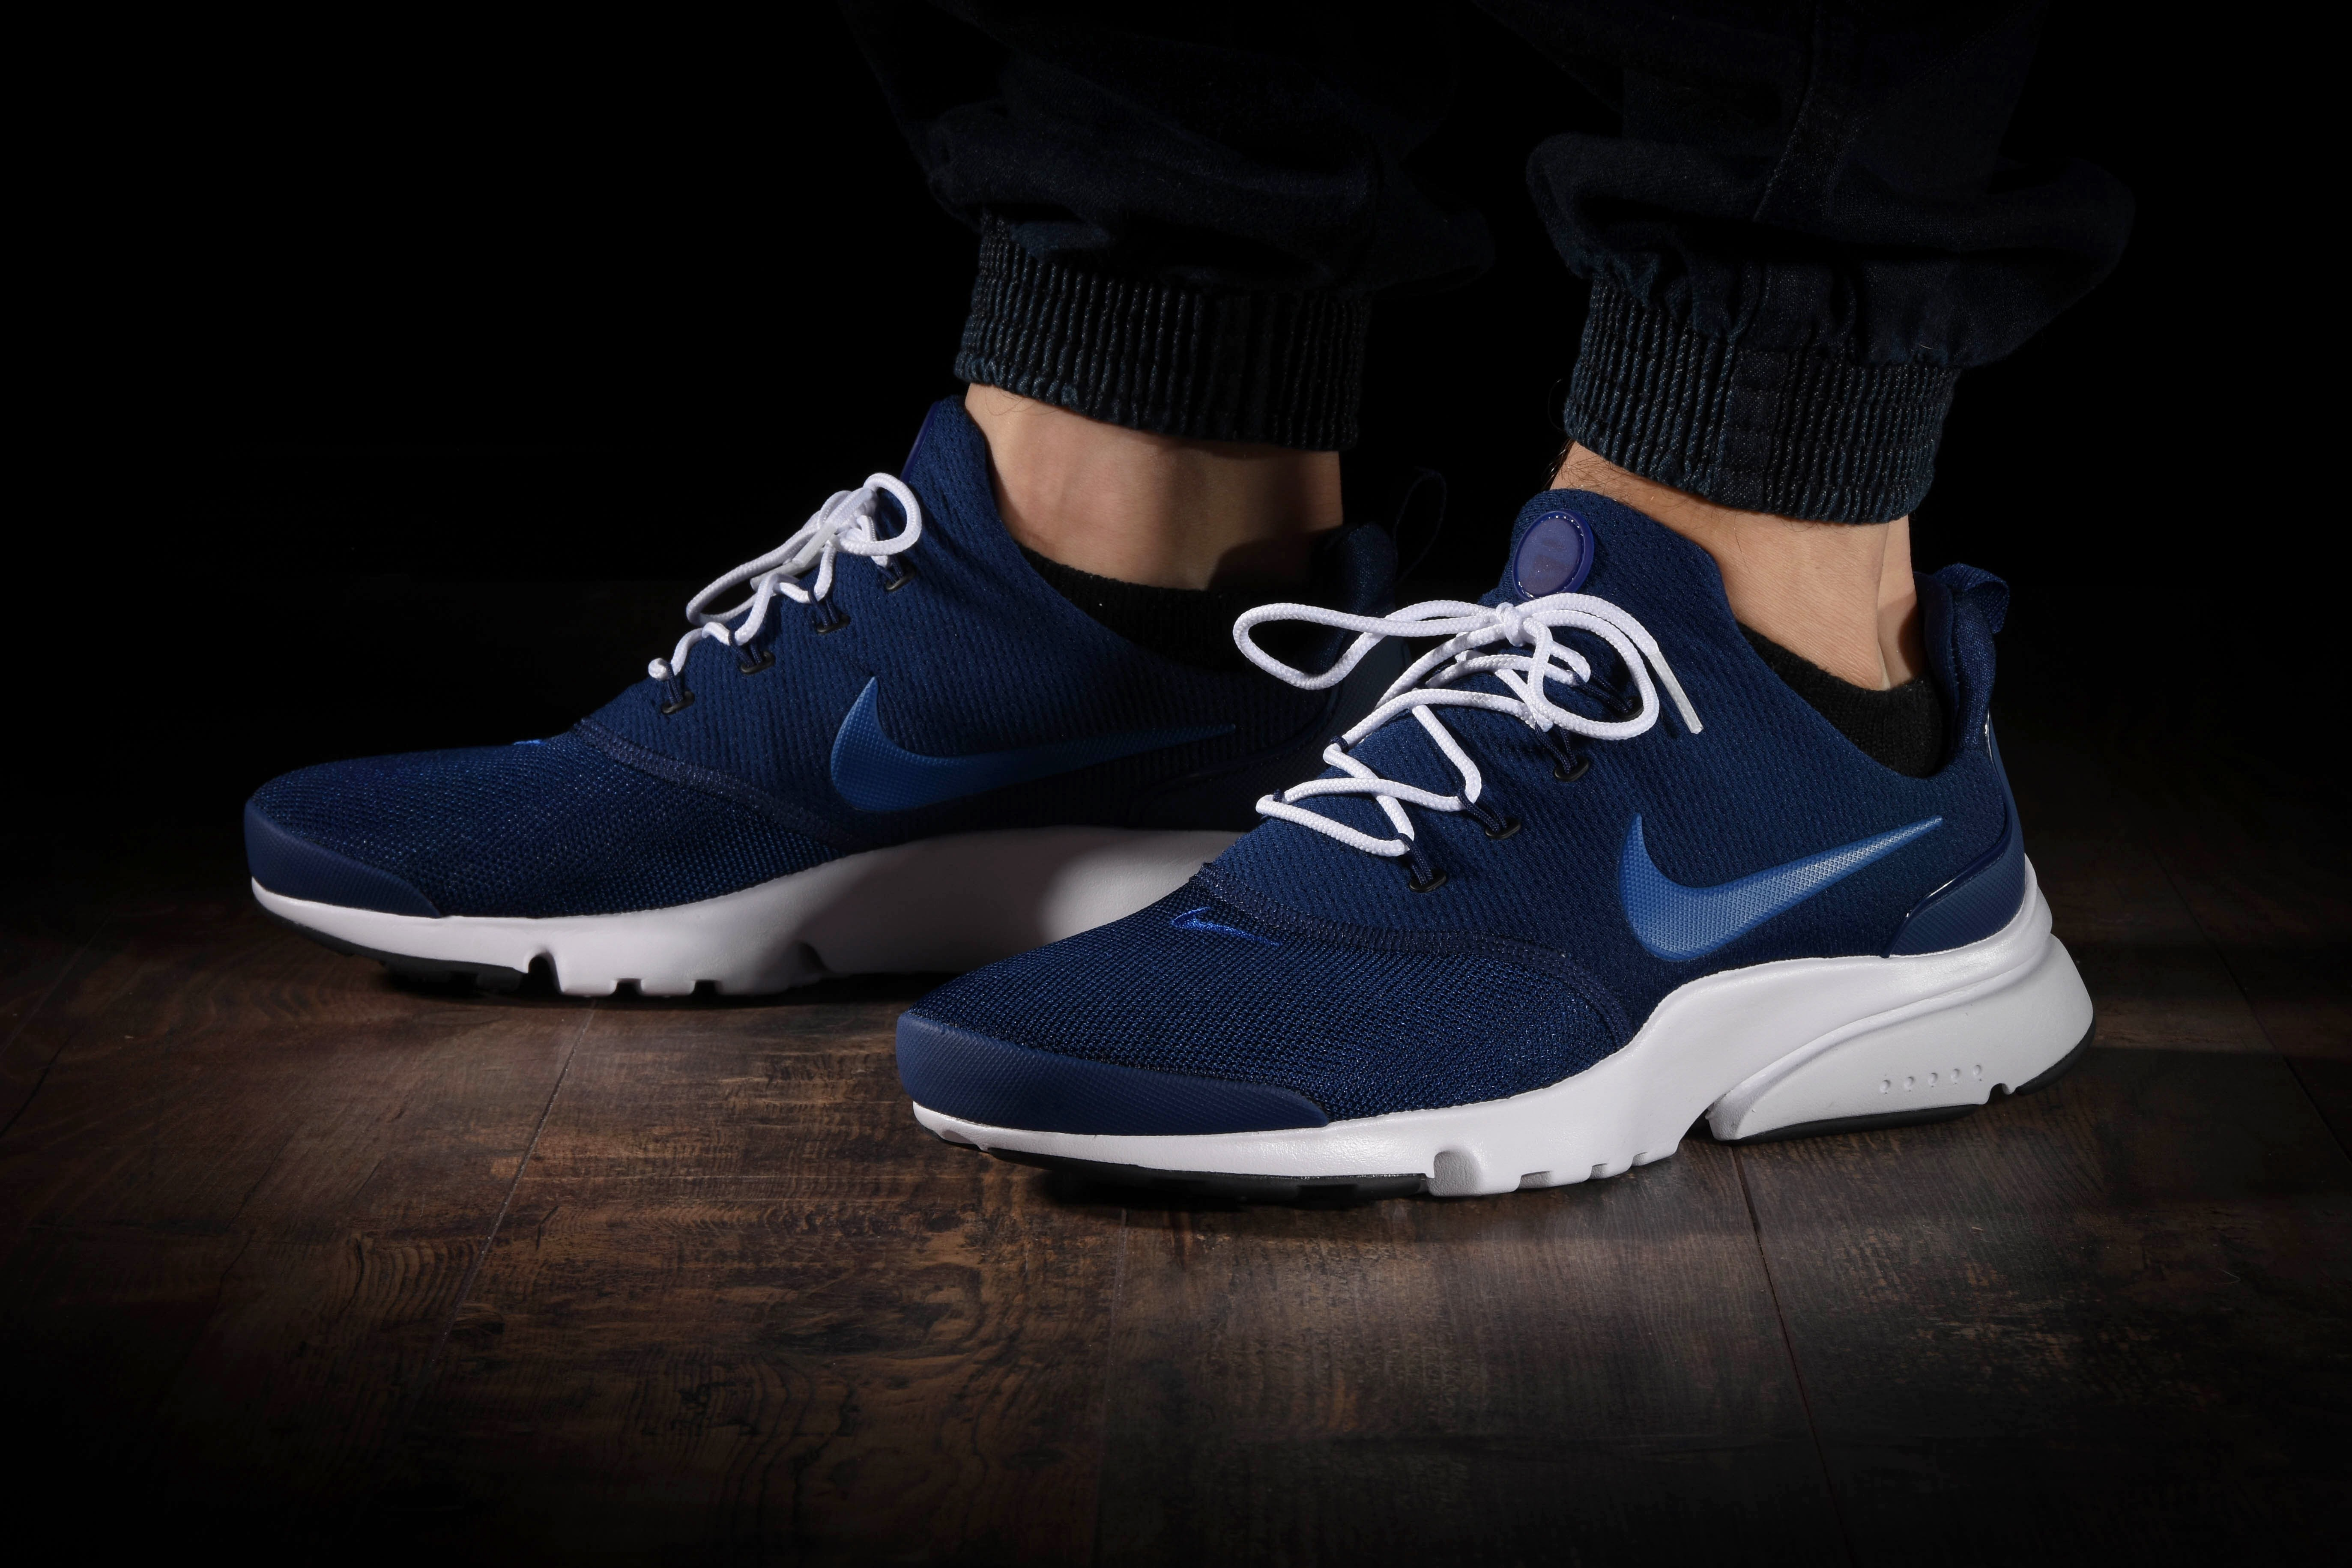 NIKE AIR PRESTO FLY for £75.00